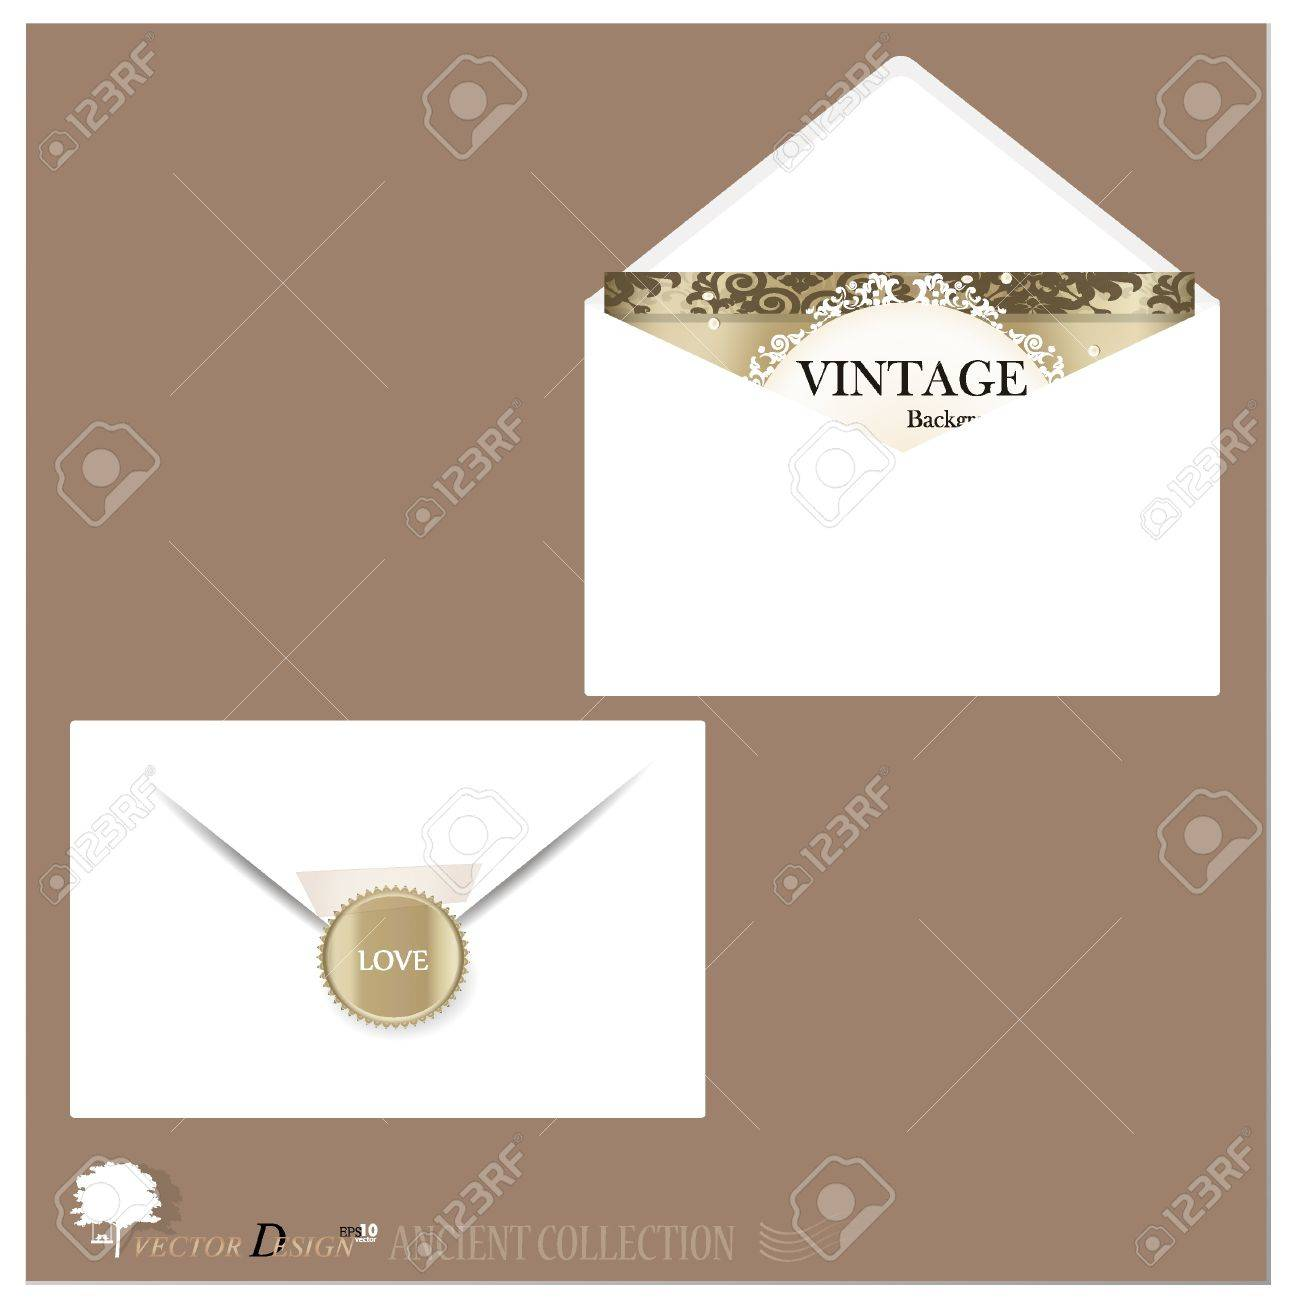 Envelope and postcard designs. Stock Vector - 14238274